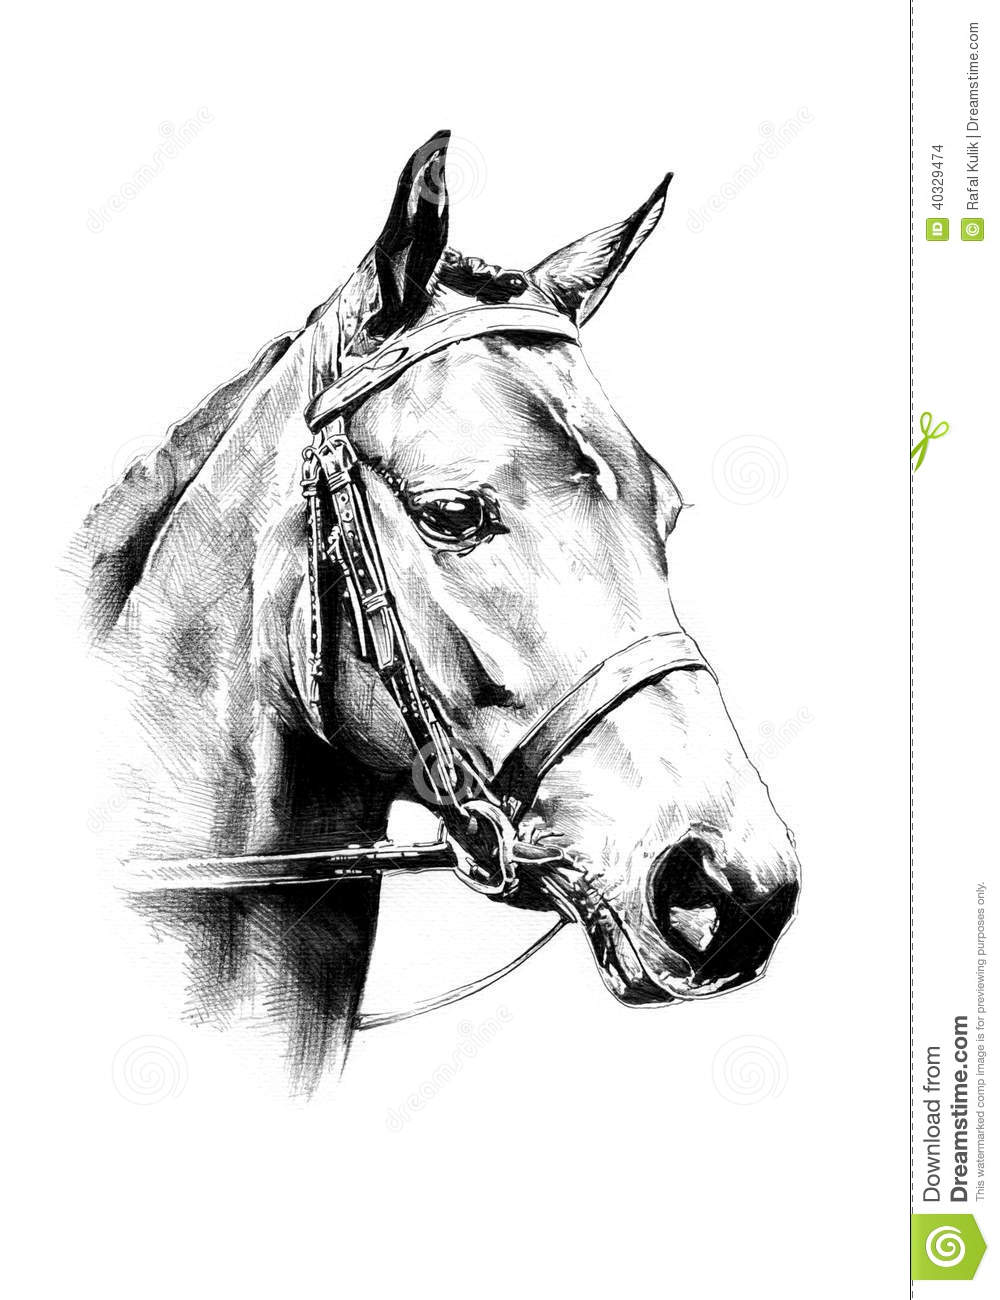 Dessin au crayon main lev e de t te de cheval illustration stock illustration du mustang - Dessin de tete de cheval ...